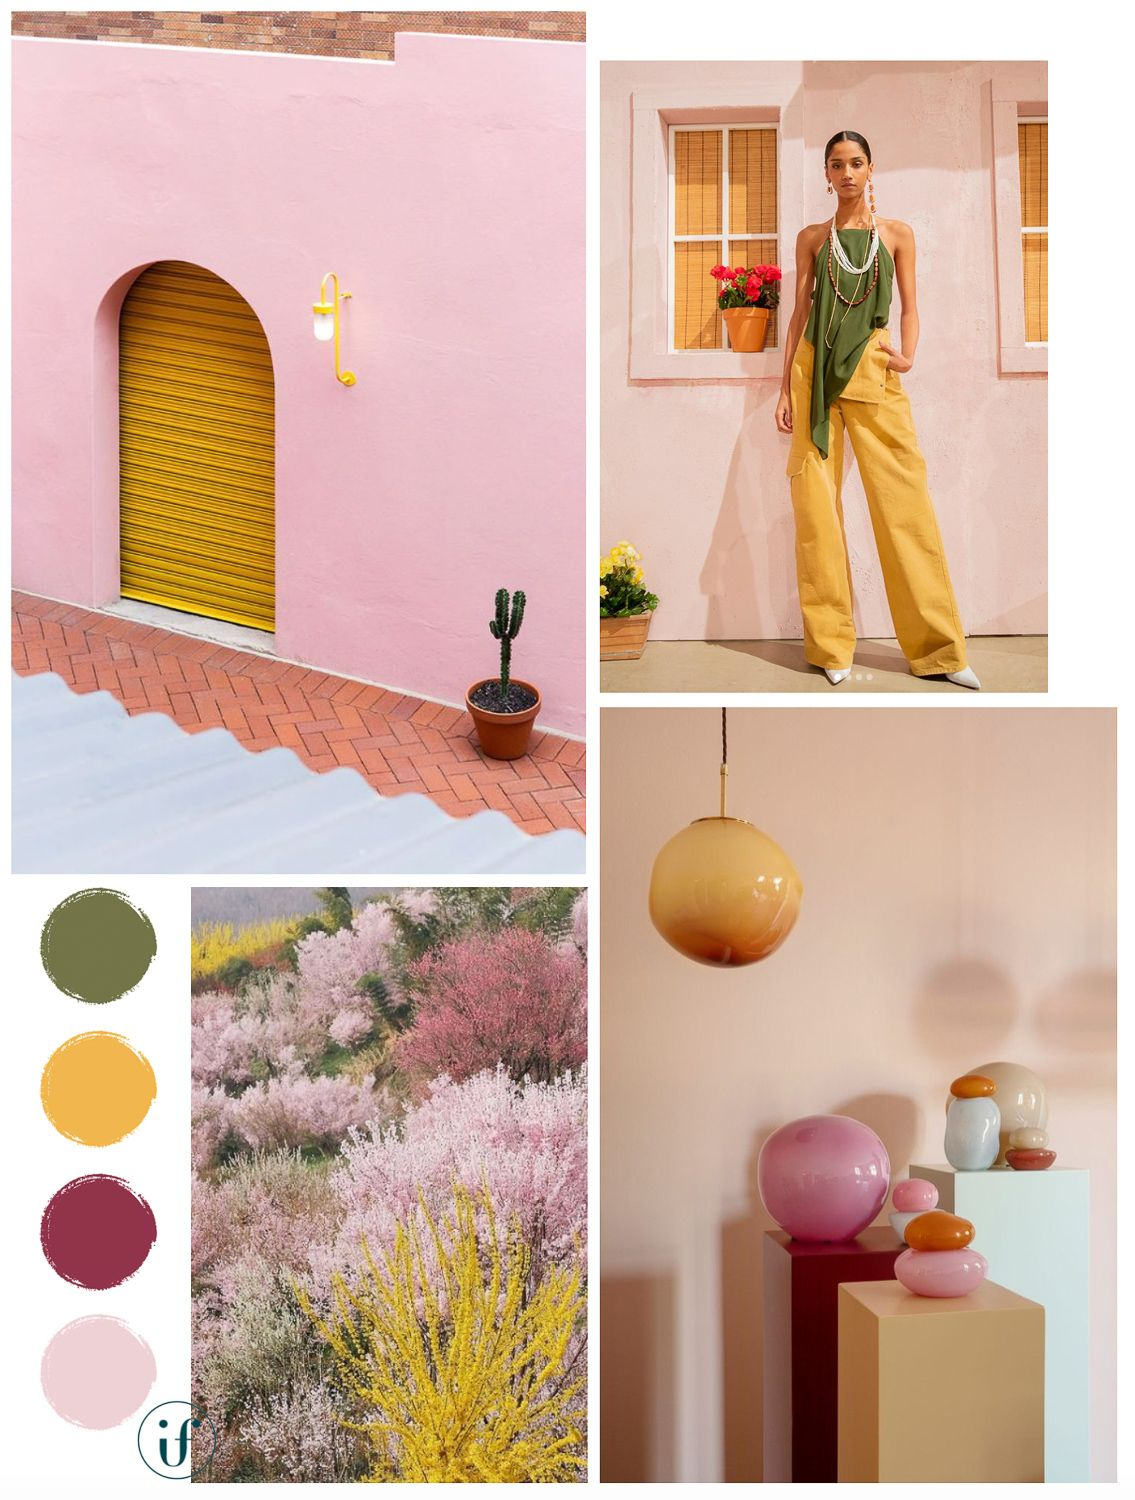 Back to Mood Boards & Inspirations